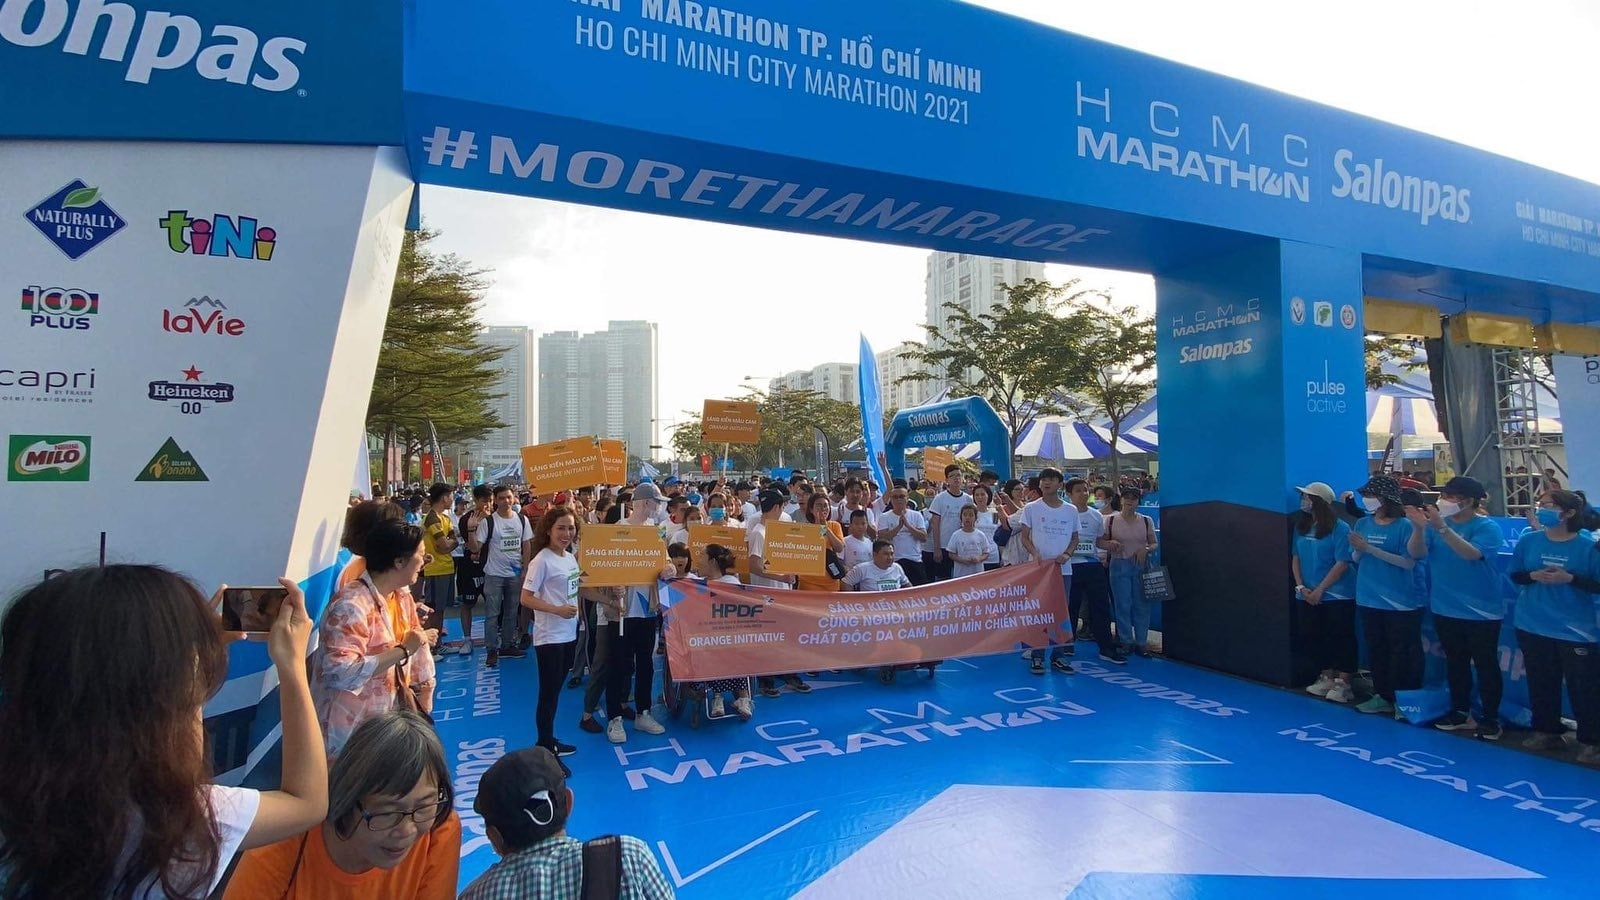 Orange initiative at hcmc marathon 2021